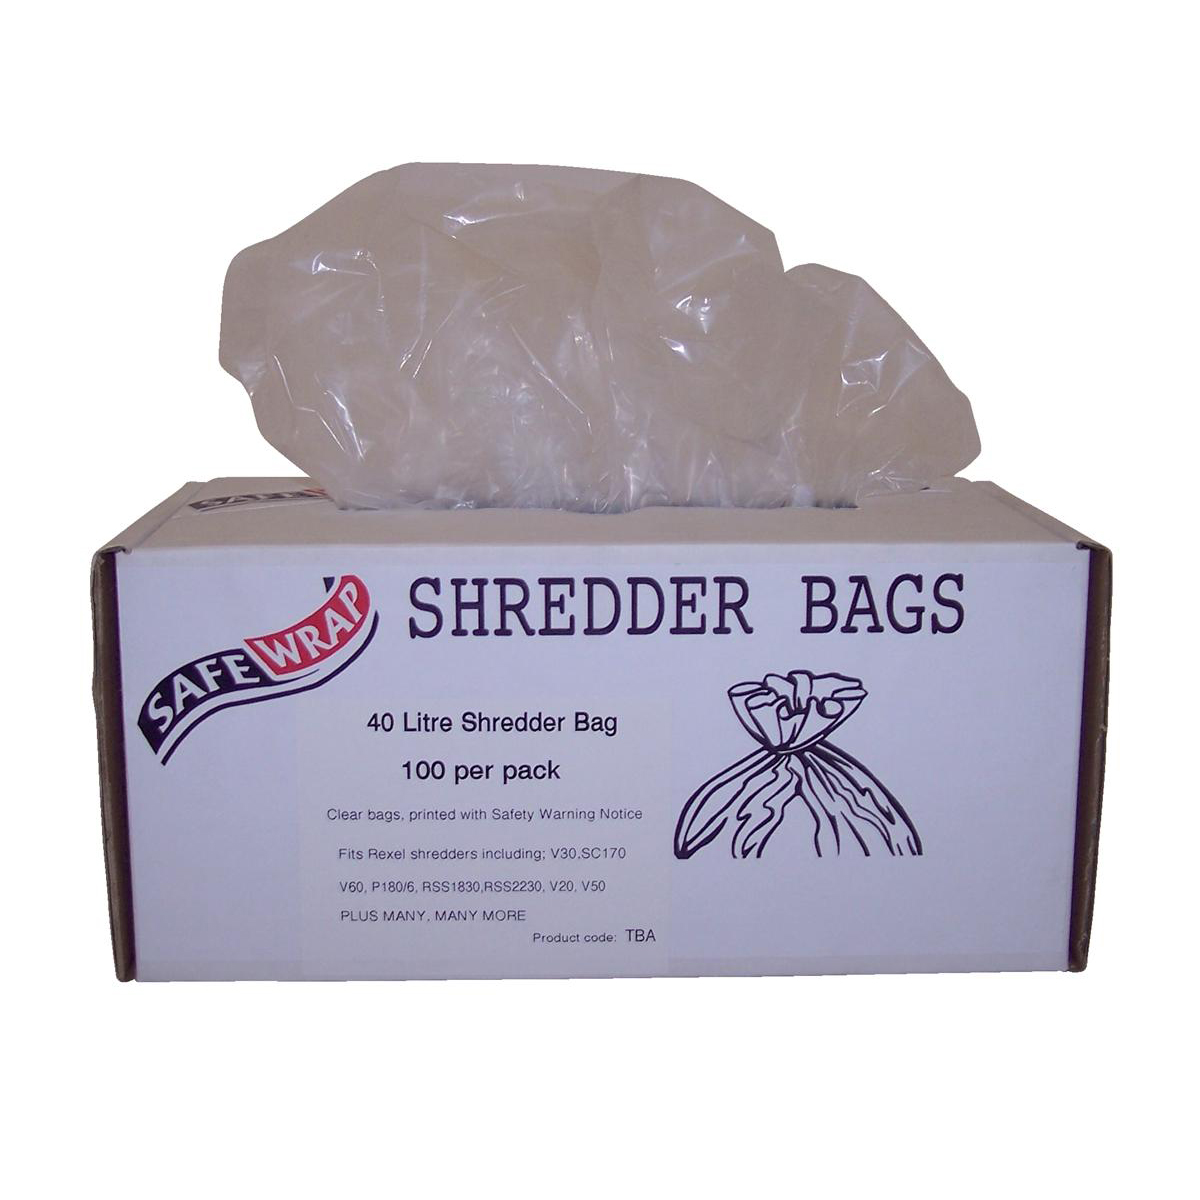 Image for Robinson Young Safewrap Shredder Bags 40 Litre Ref RY0470 [Pack 100]